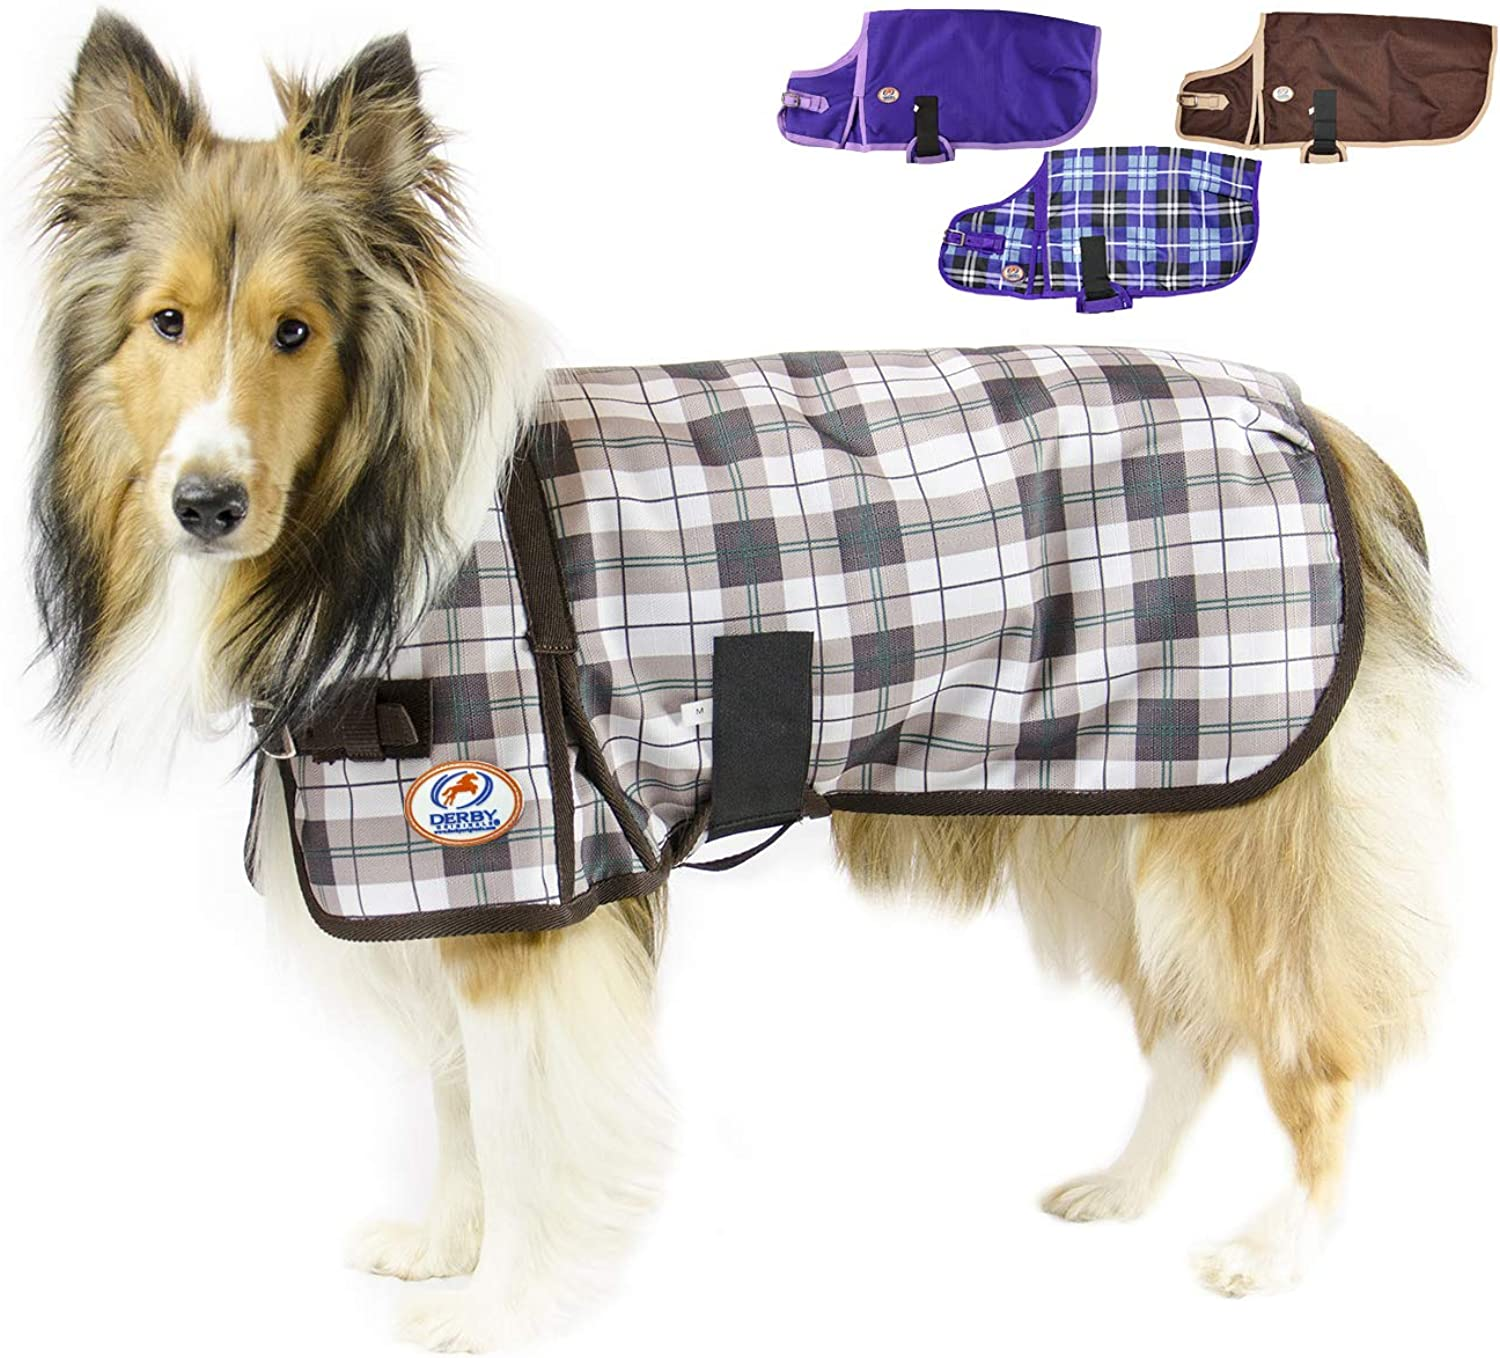 CuteNfuzzy Green Fawn Plaid Super Tough 1200D Dog Coat with Fleece Lining with 2 Year Limited Warranty, Large